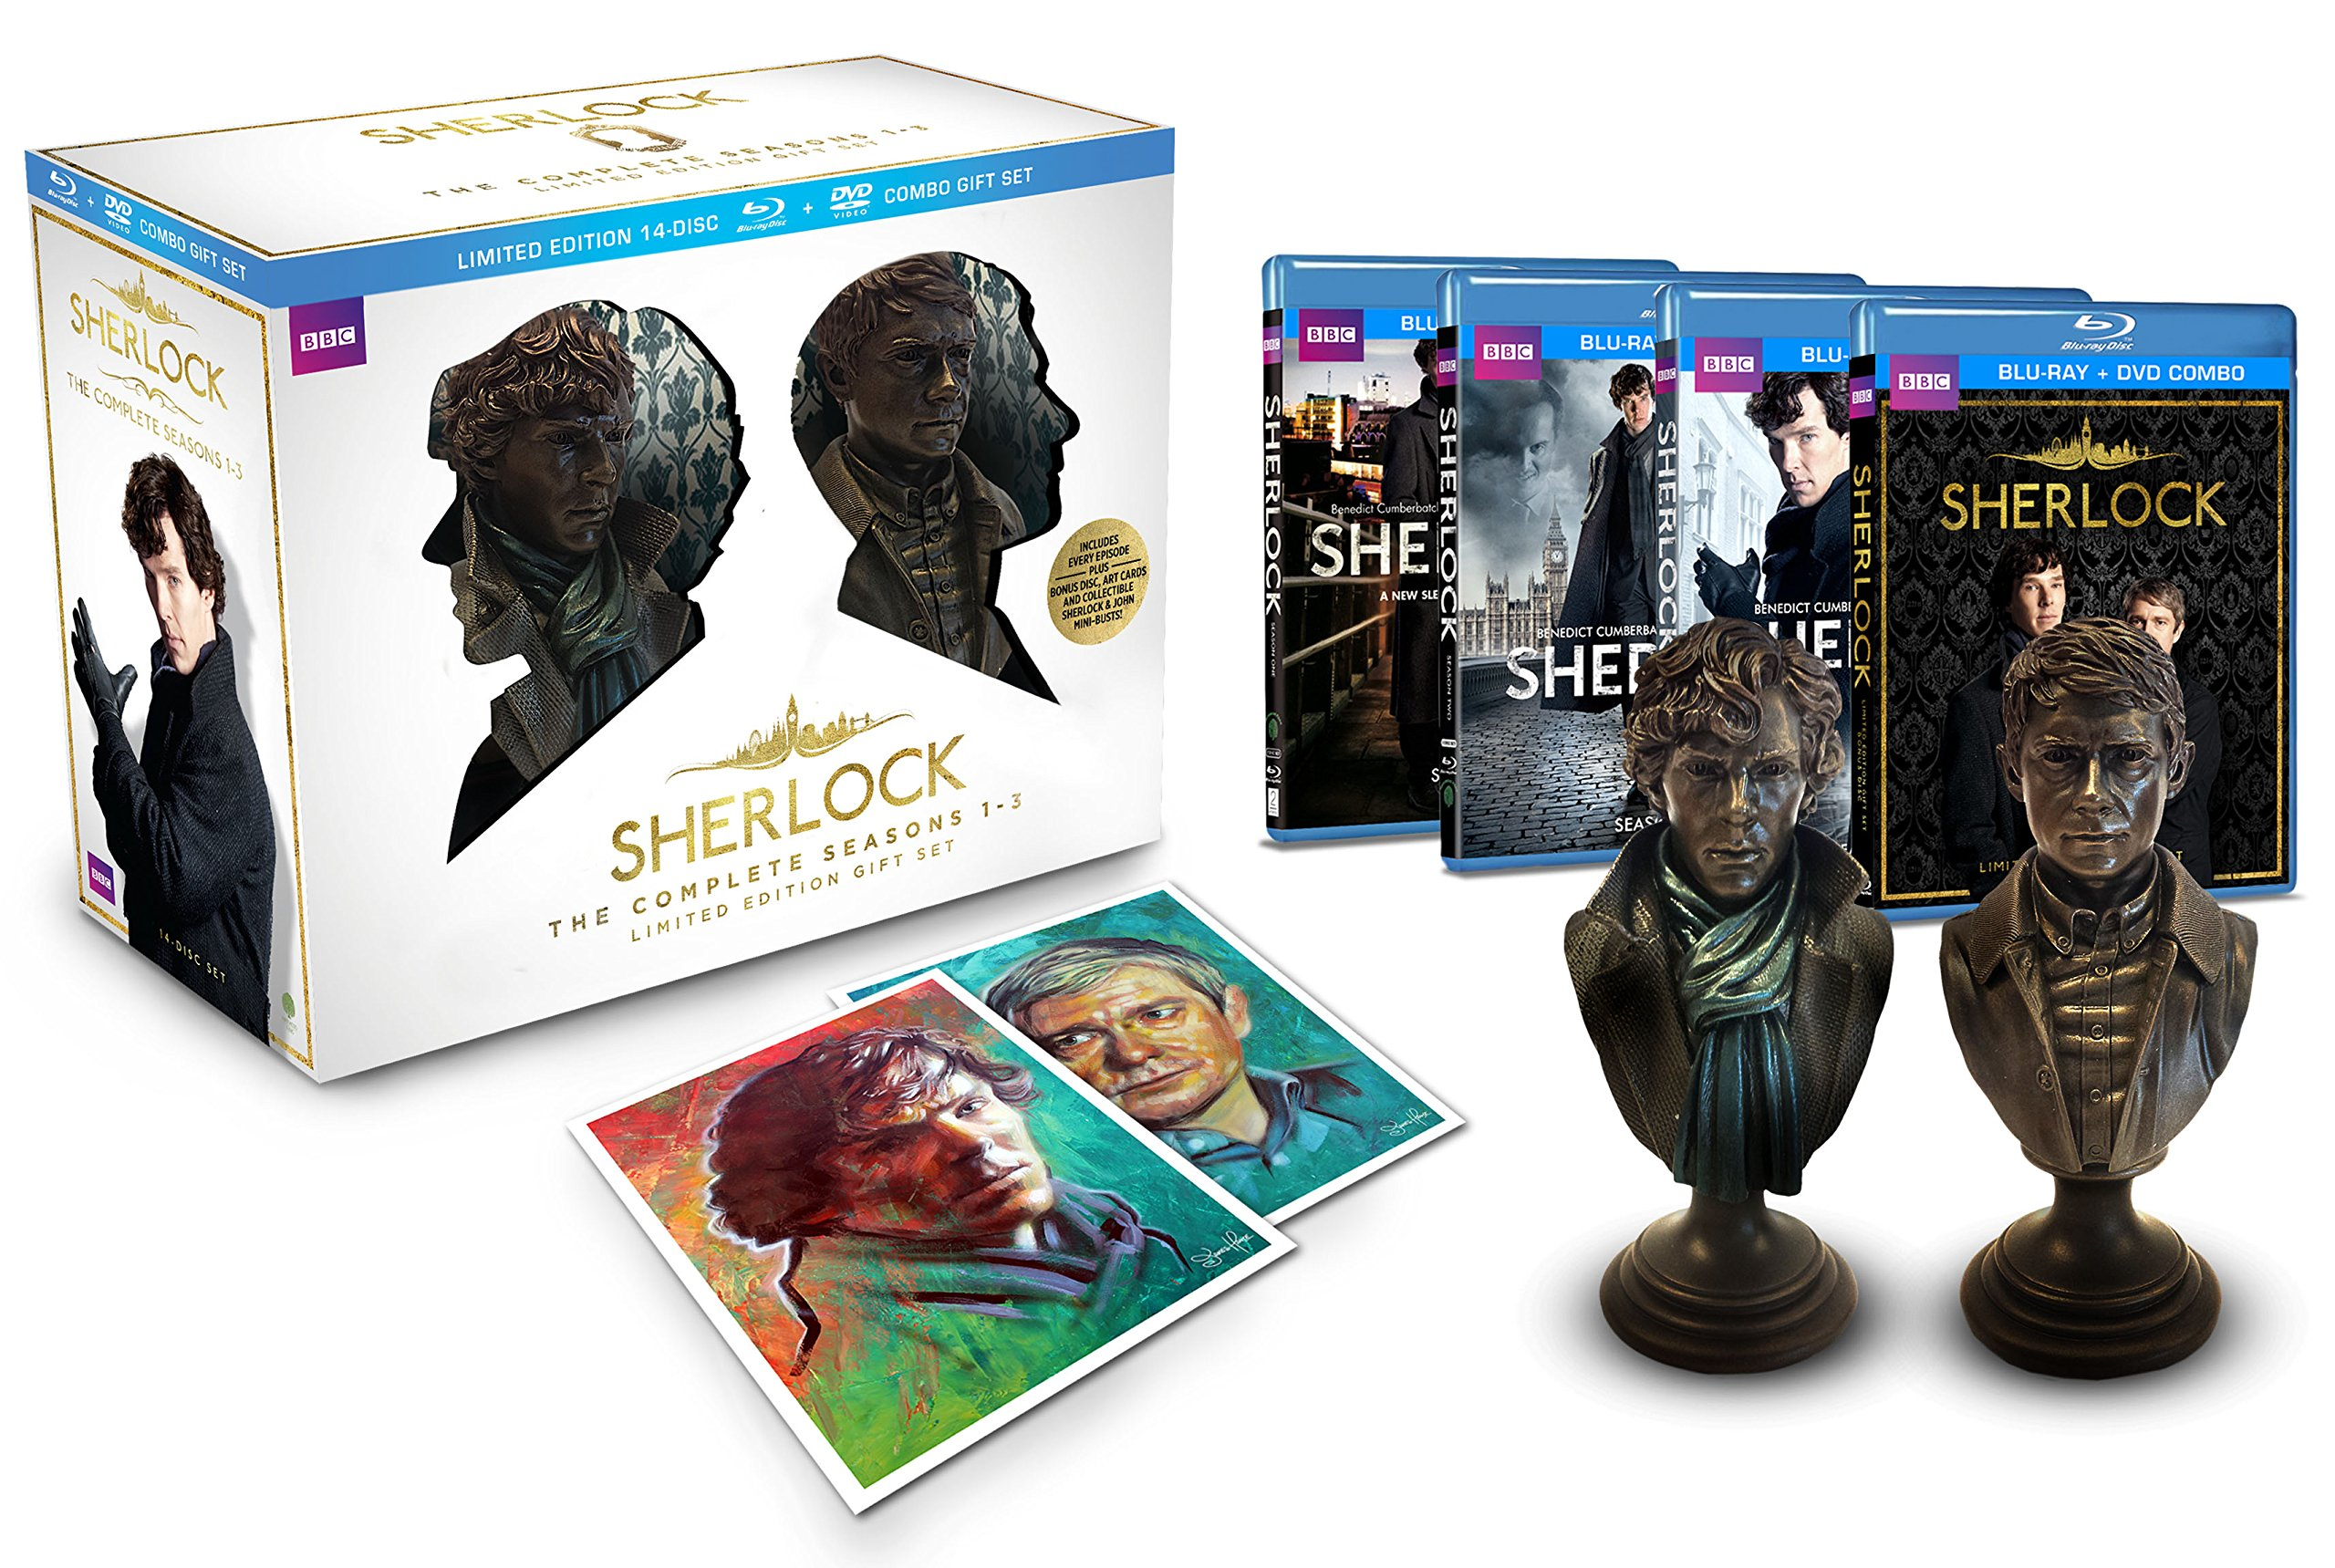 Sherlock Limited Edition Gift Set (The Complete Seasons 1-3 Blu-ray/DVD Combo) by WARNER HOME VIDEO